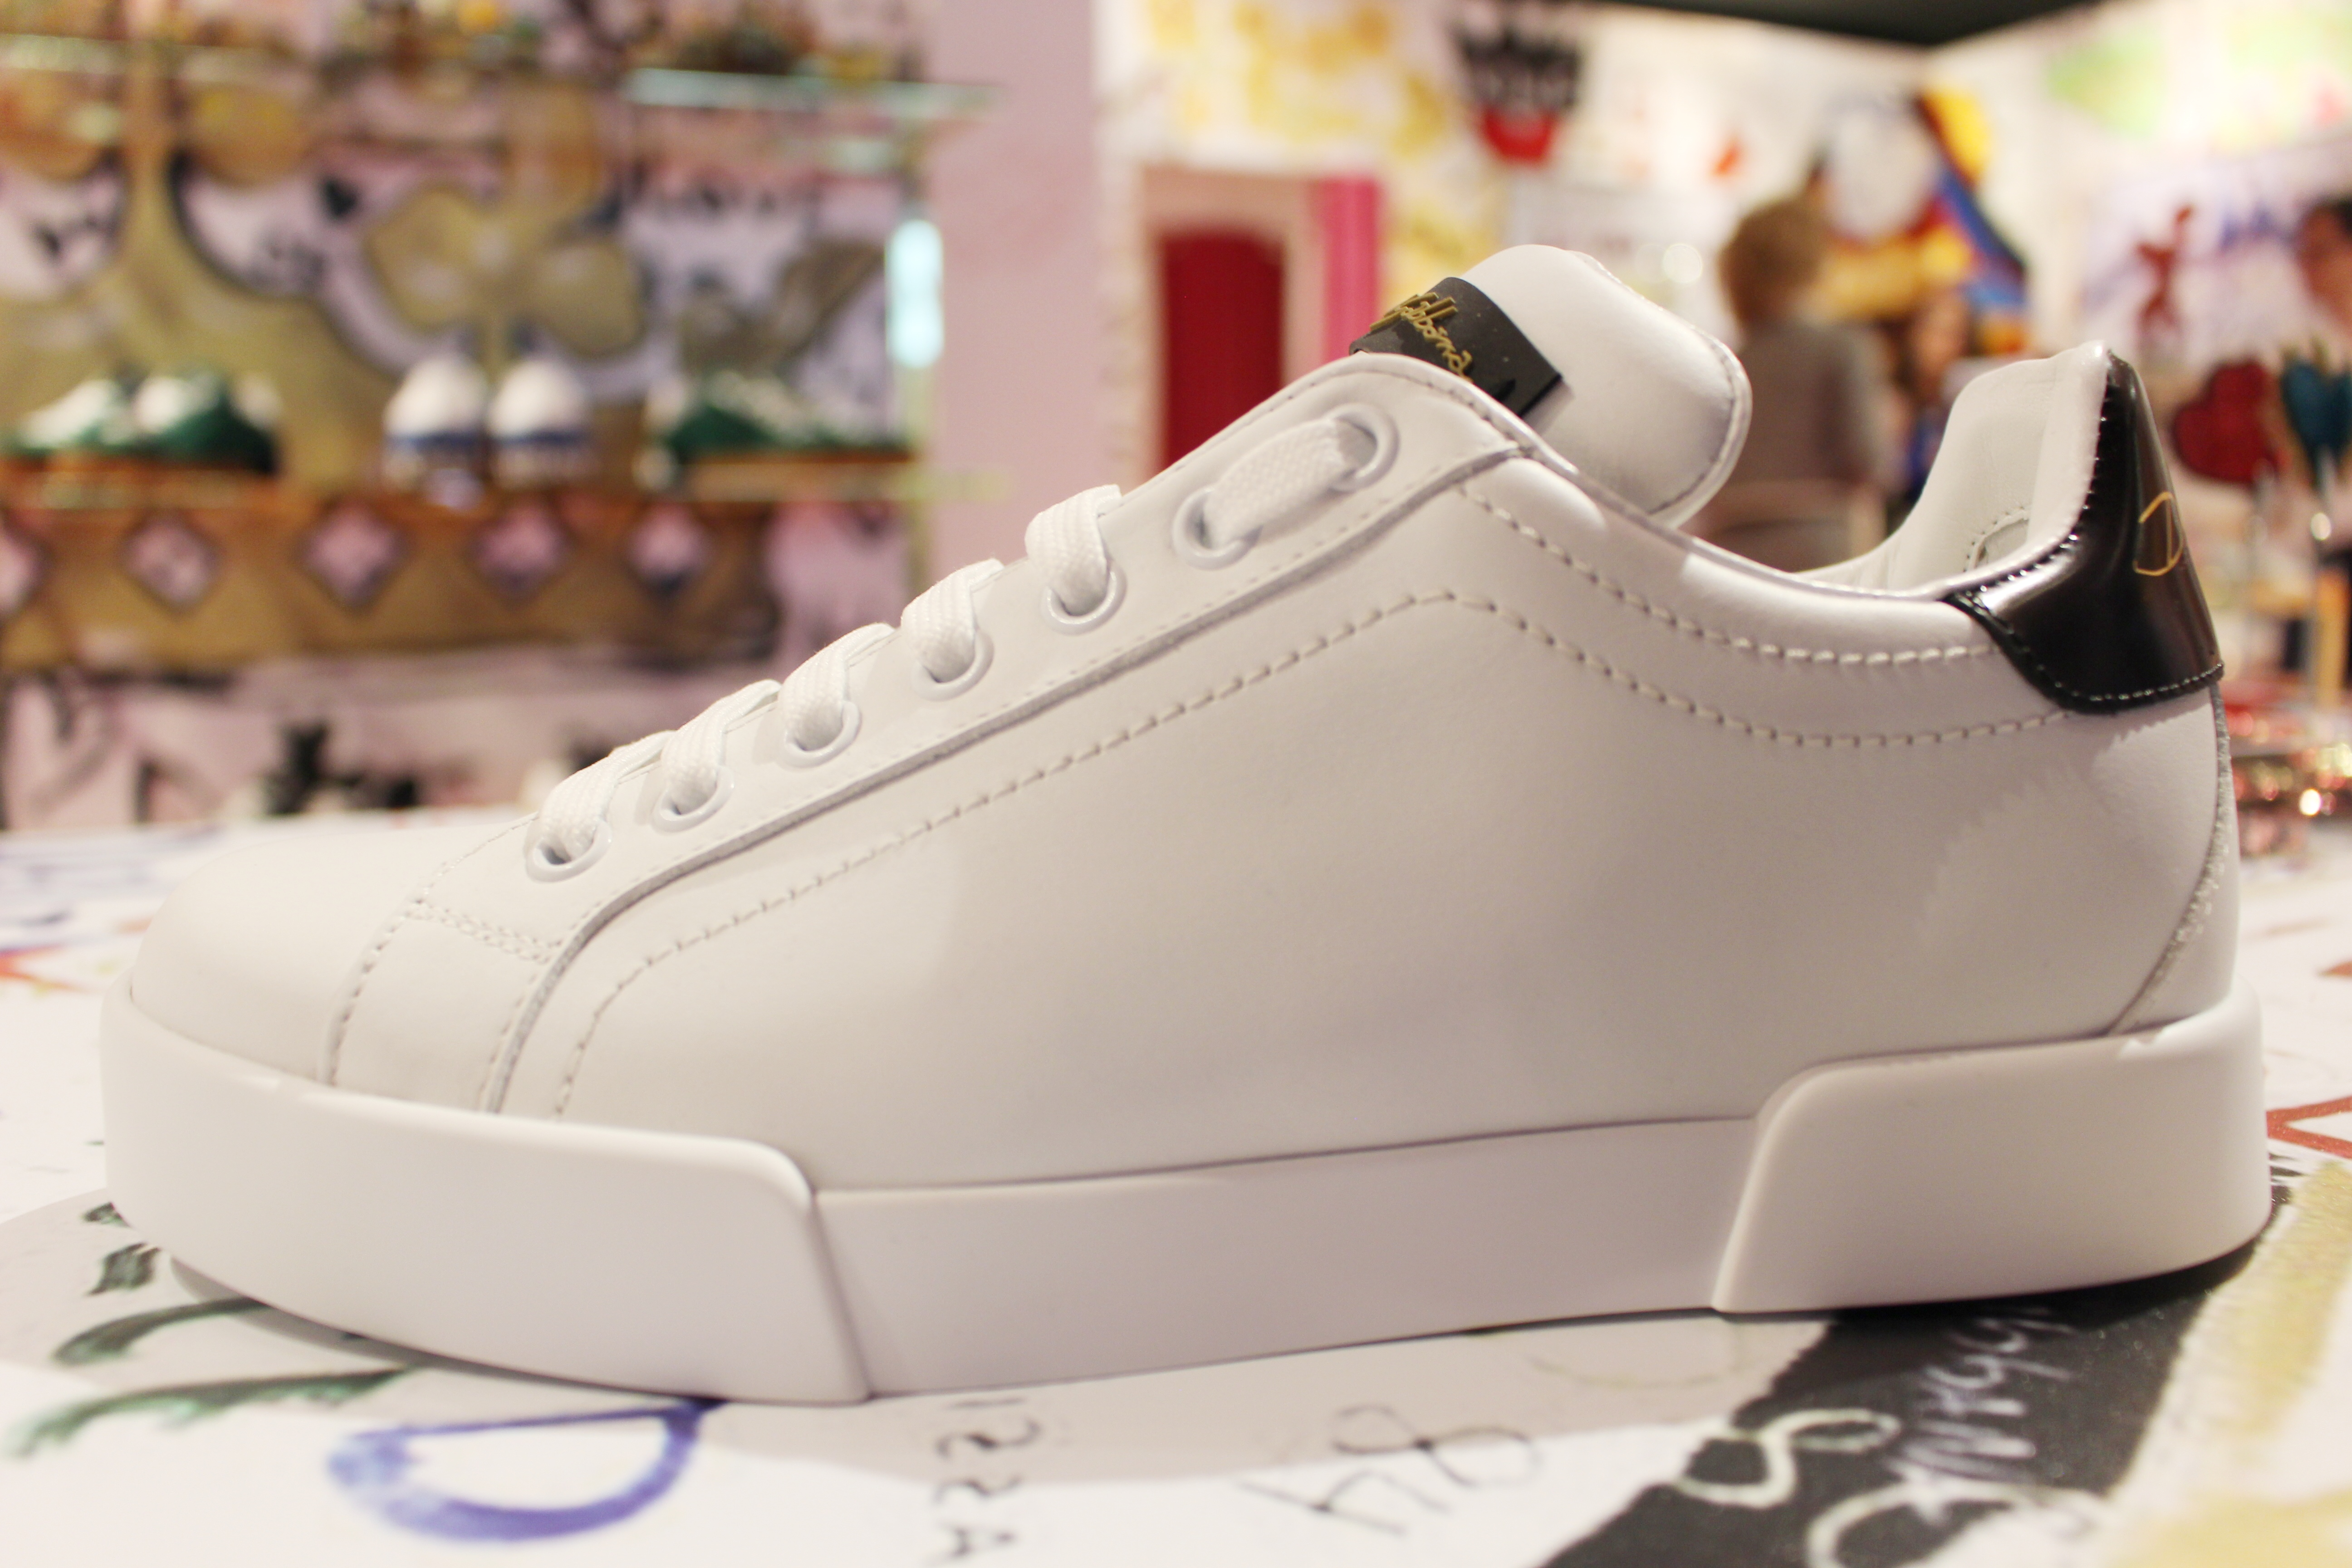 Dolce & Gabbana Customized Sneakers Archives Christie Moeller